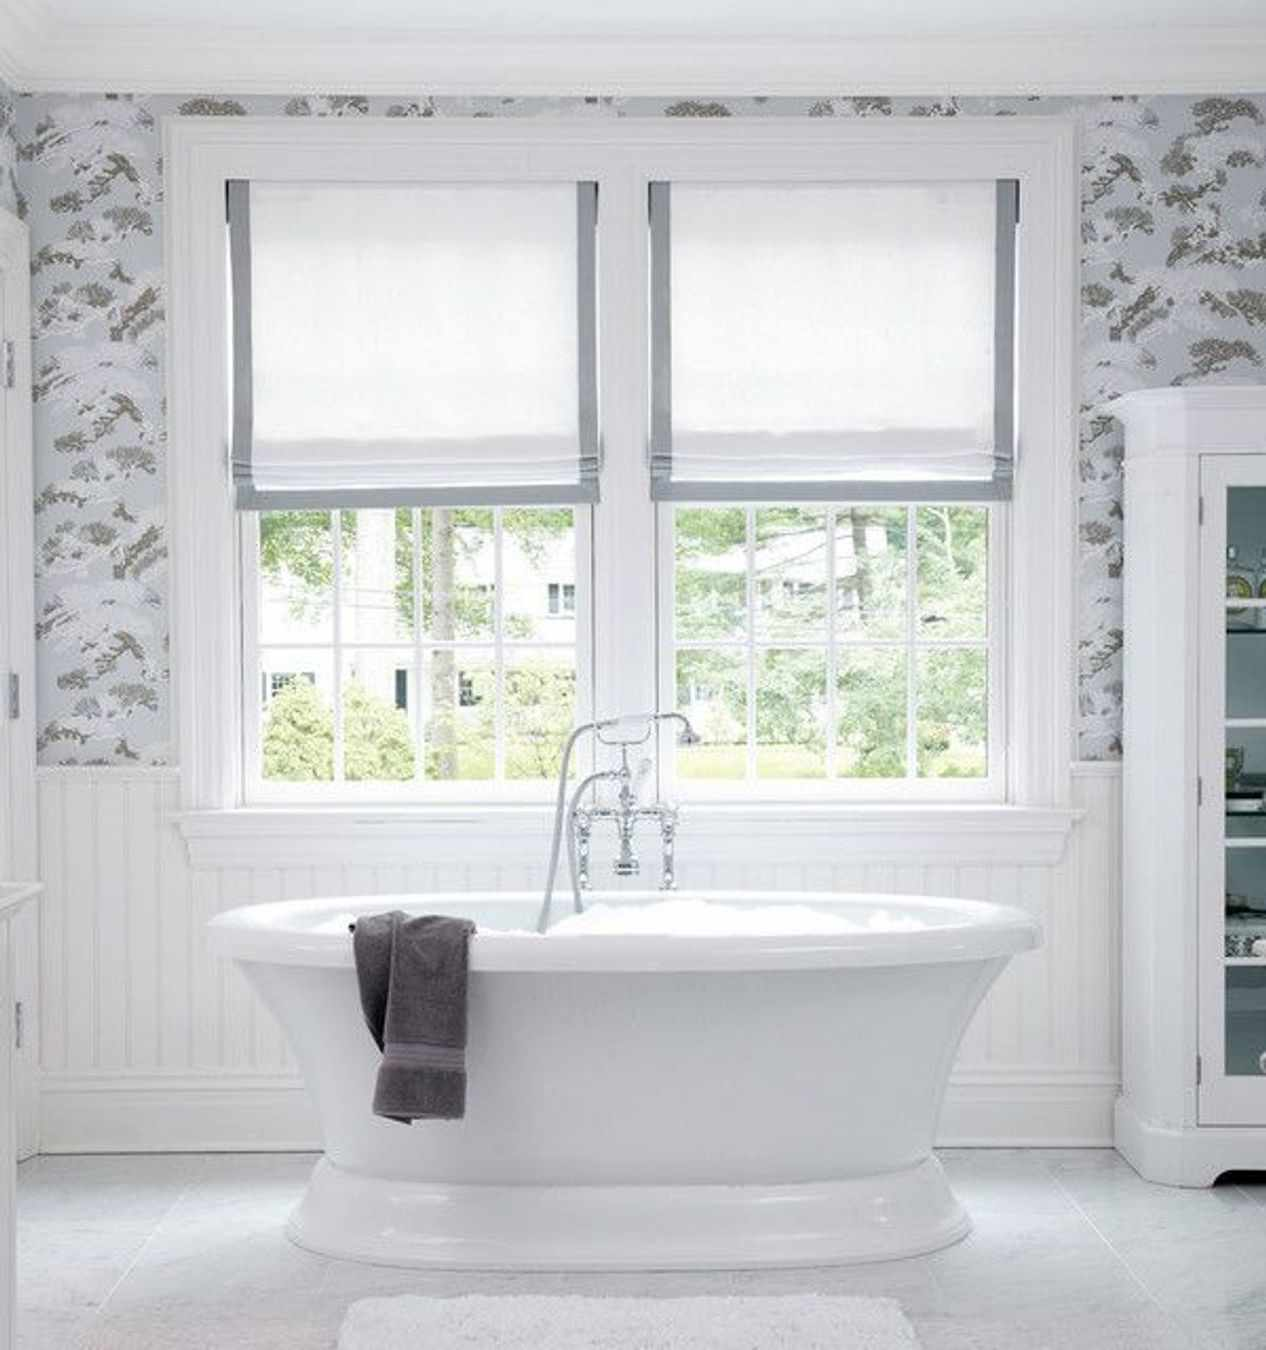 9 bathroom window treatment ideas deco window fashions for Blinds bathroom window